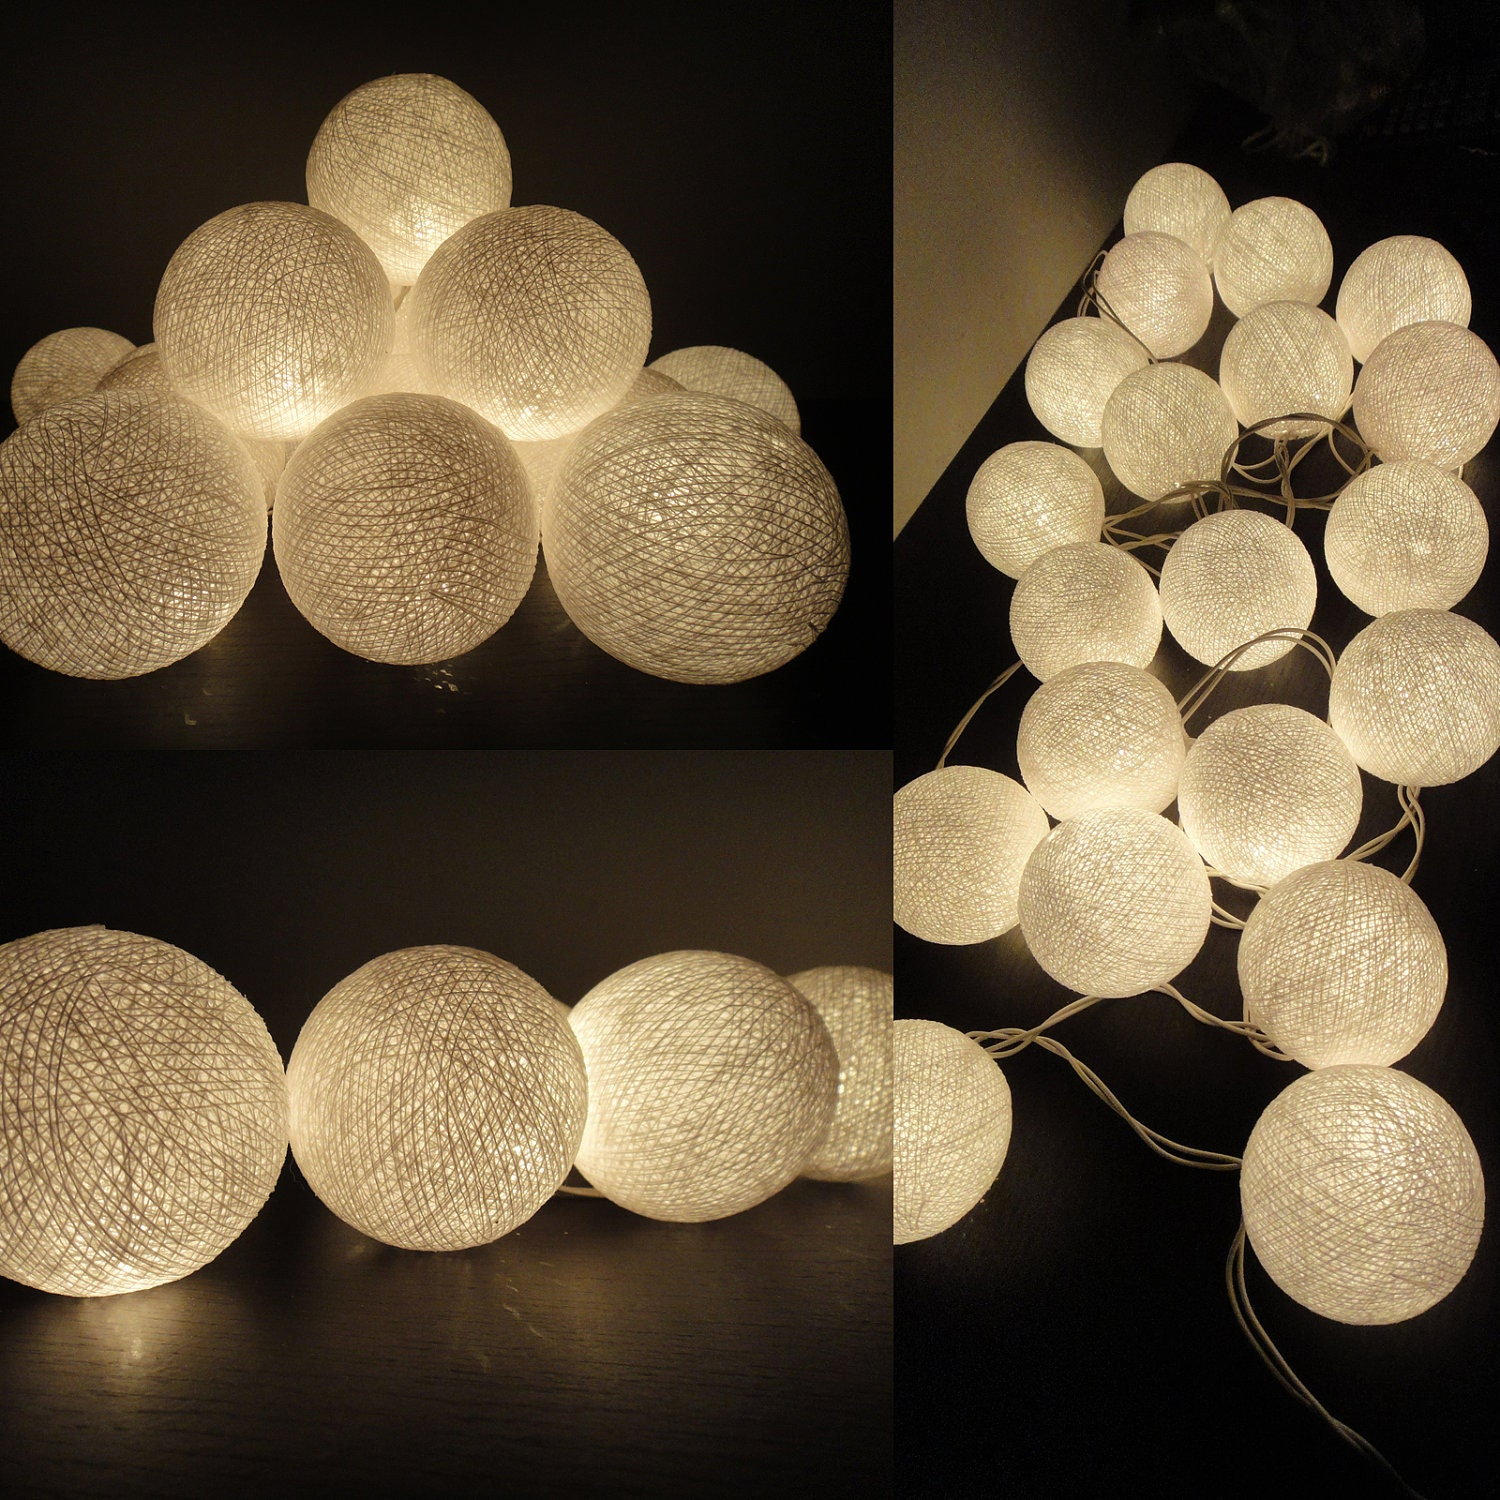 20 Big Cotton Balls White Color Fairy String Lights by marwincraft